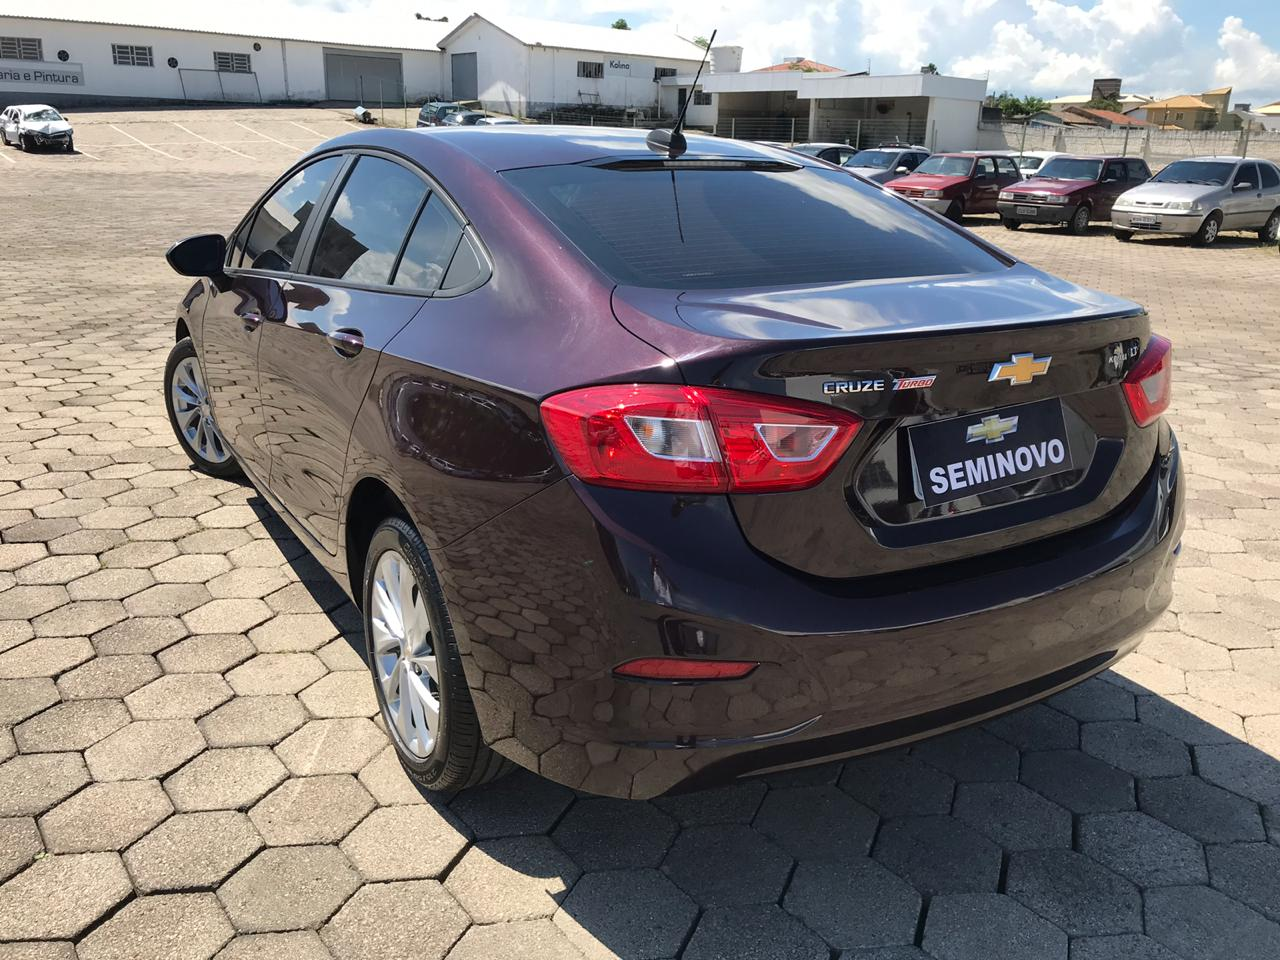 CHEVROLET CRUZE LT 1.4 TURBO 2016